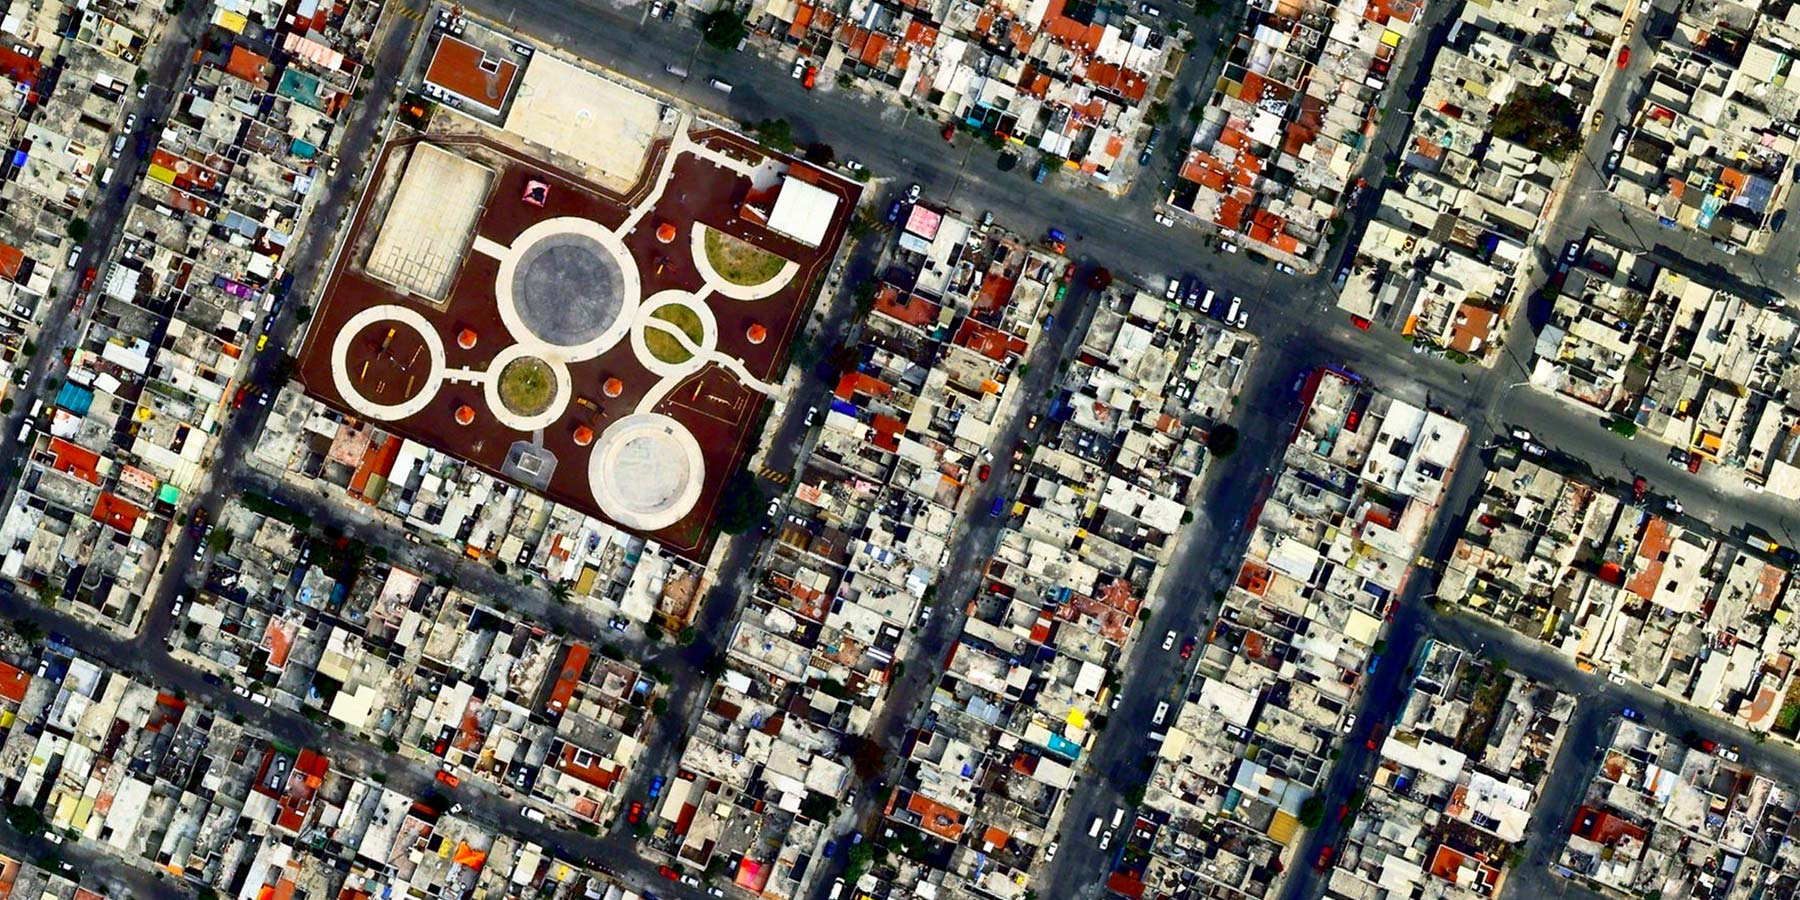 Urban satellite view, with geometric shapes